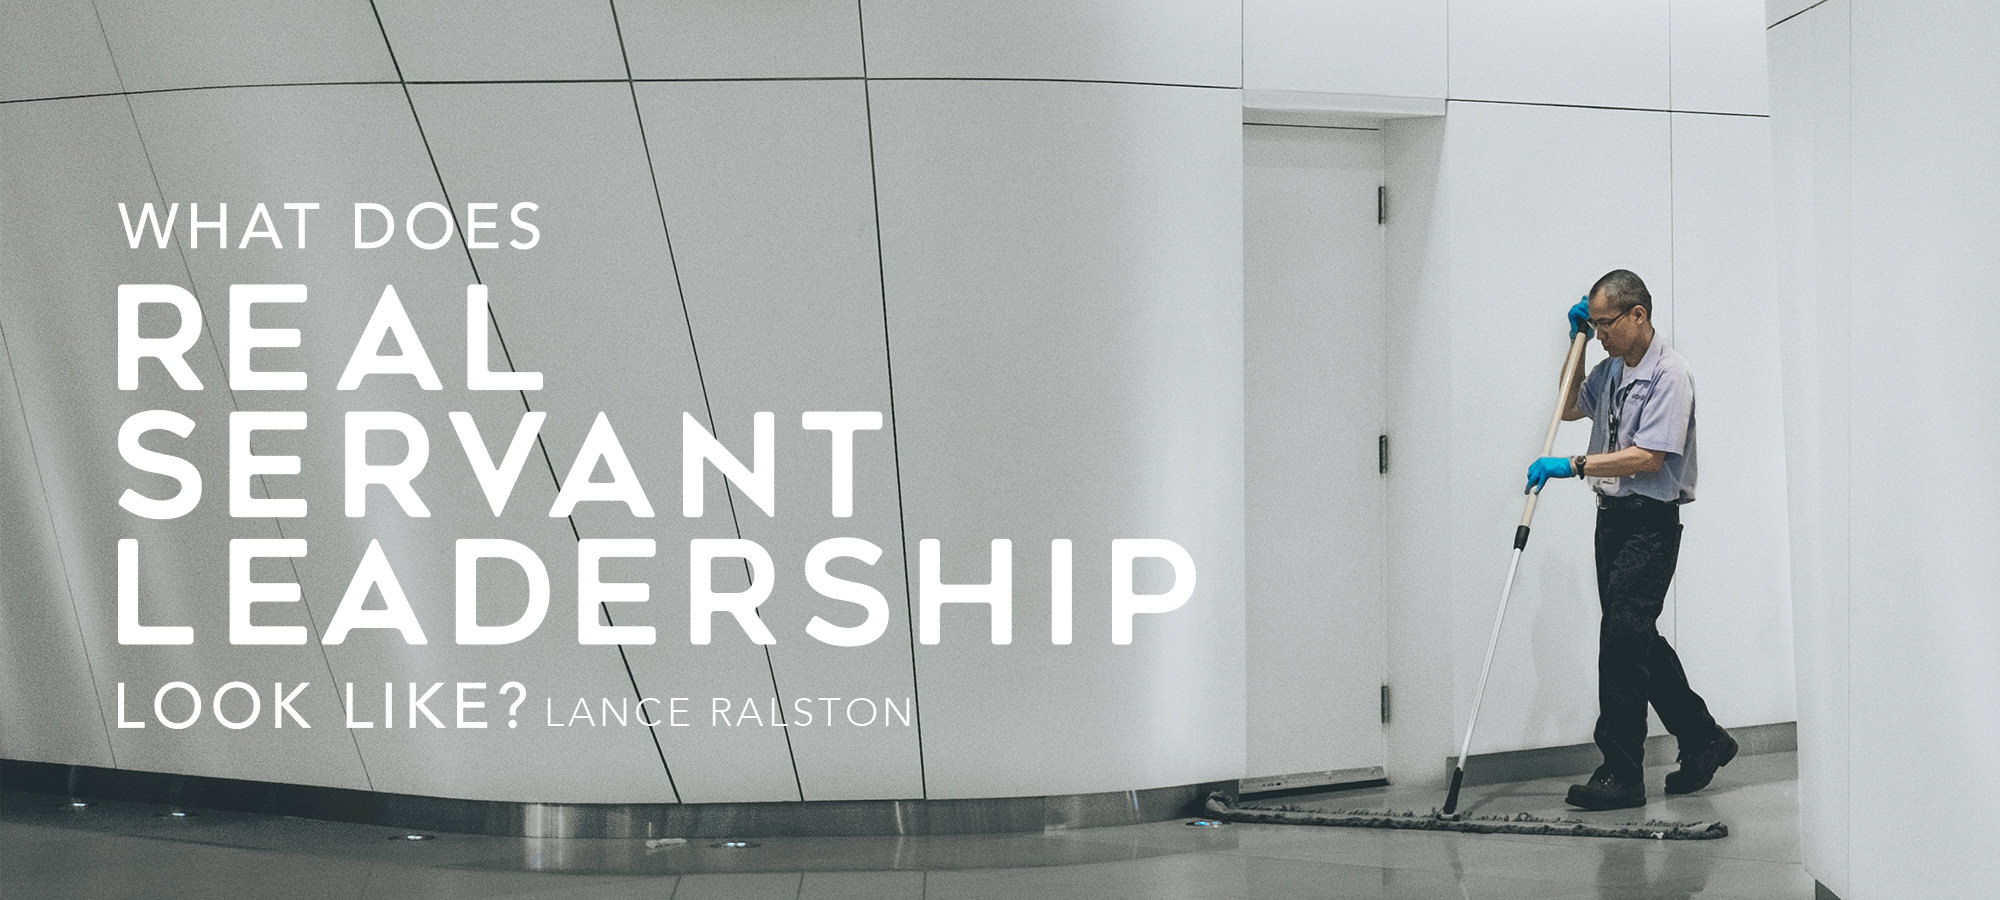 What Does Real Servant Leadership Look Like?